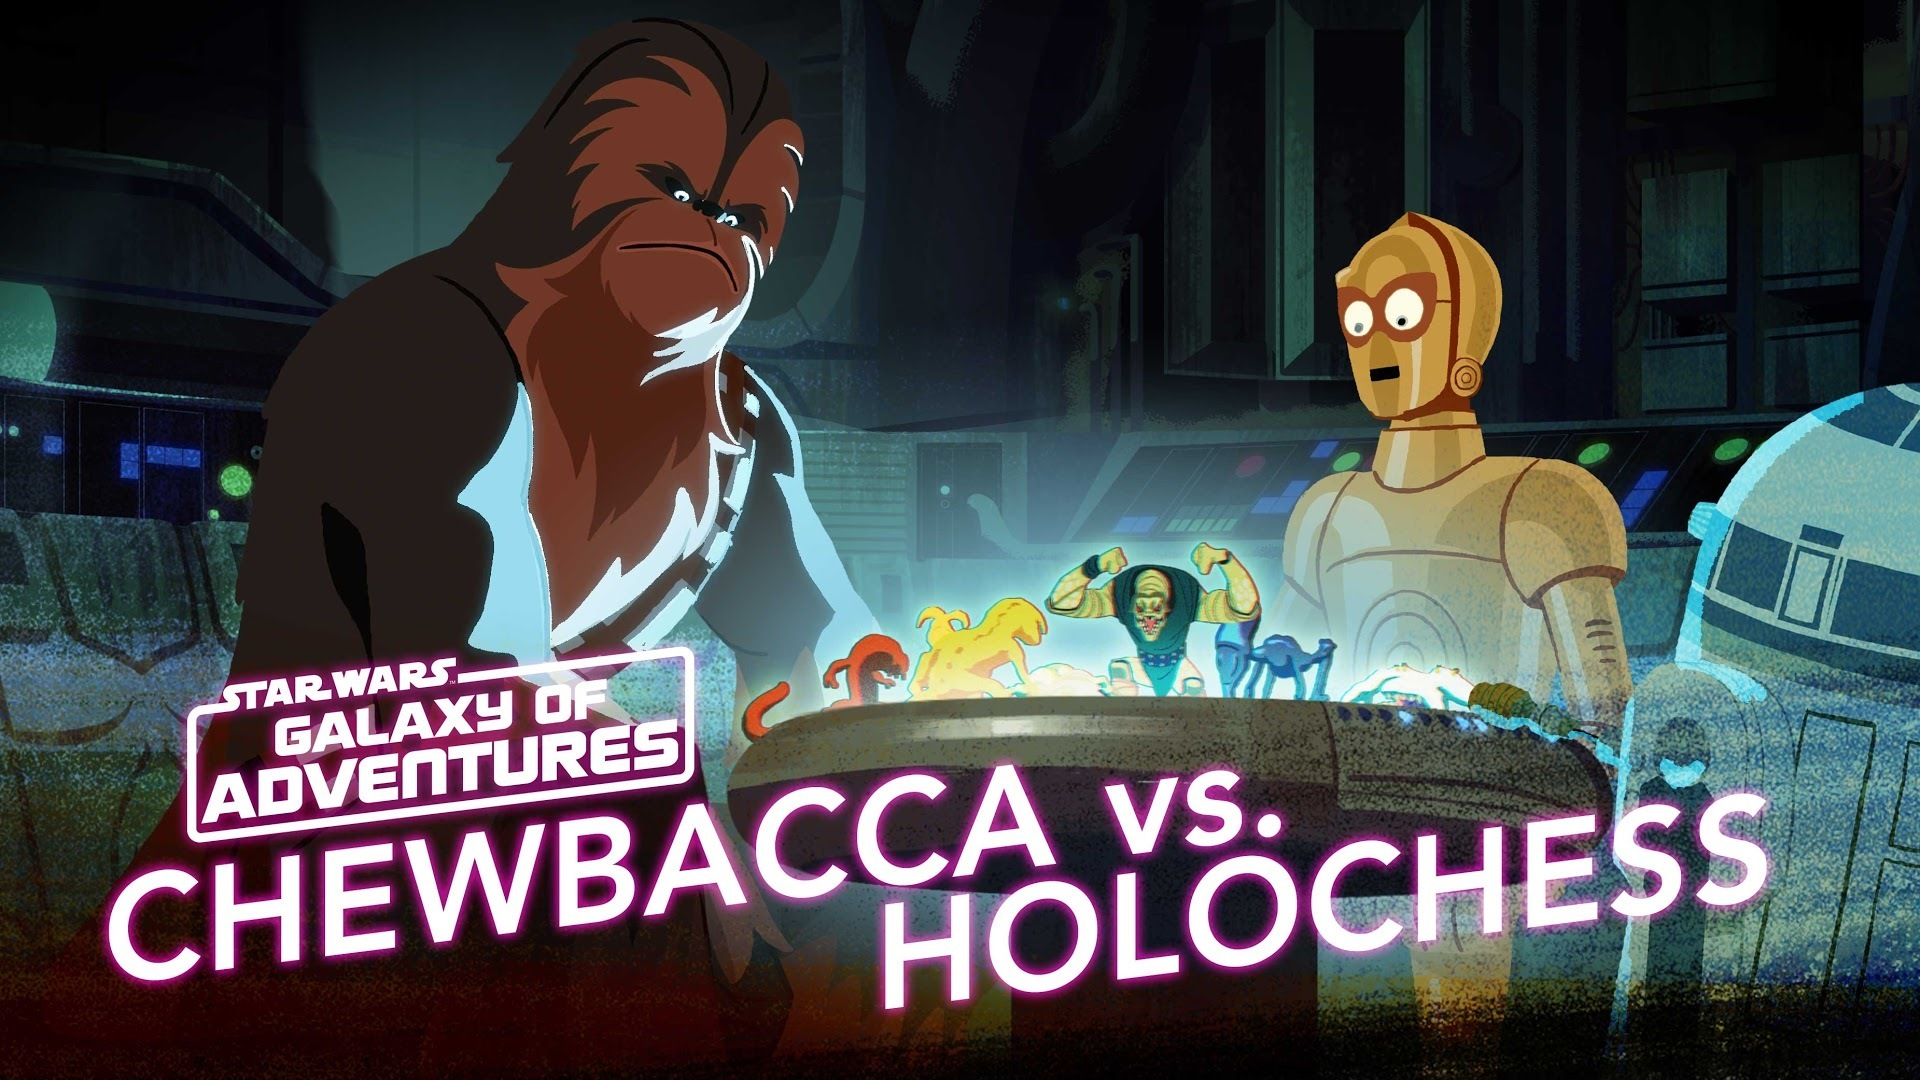 Chewie vs. Holochess – Let The Wookiee Win | Star Wars Galaxy of Adventures